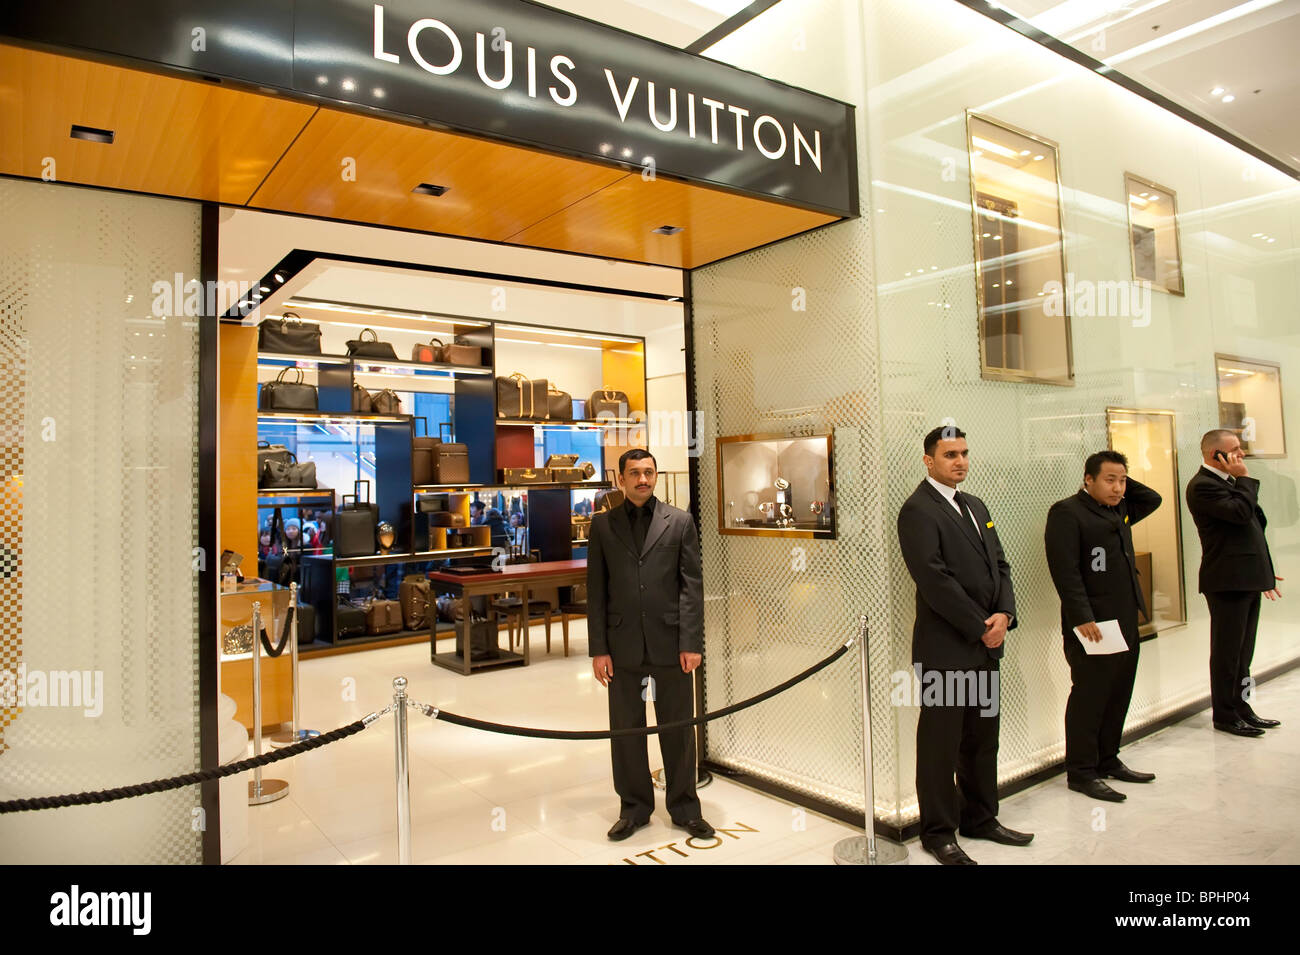 louis vuitton boutique stock photos louis vuitton boutique stock images alamy. Black Bedroom Furniture Sets. Home Design Ideas